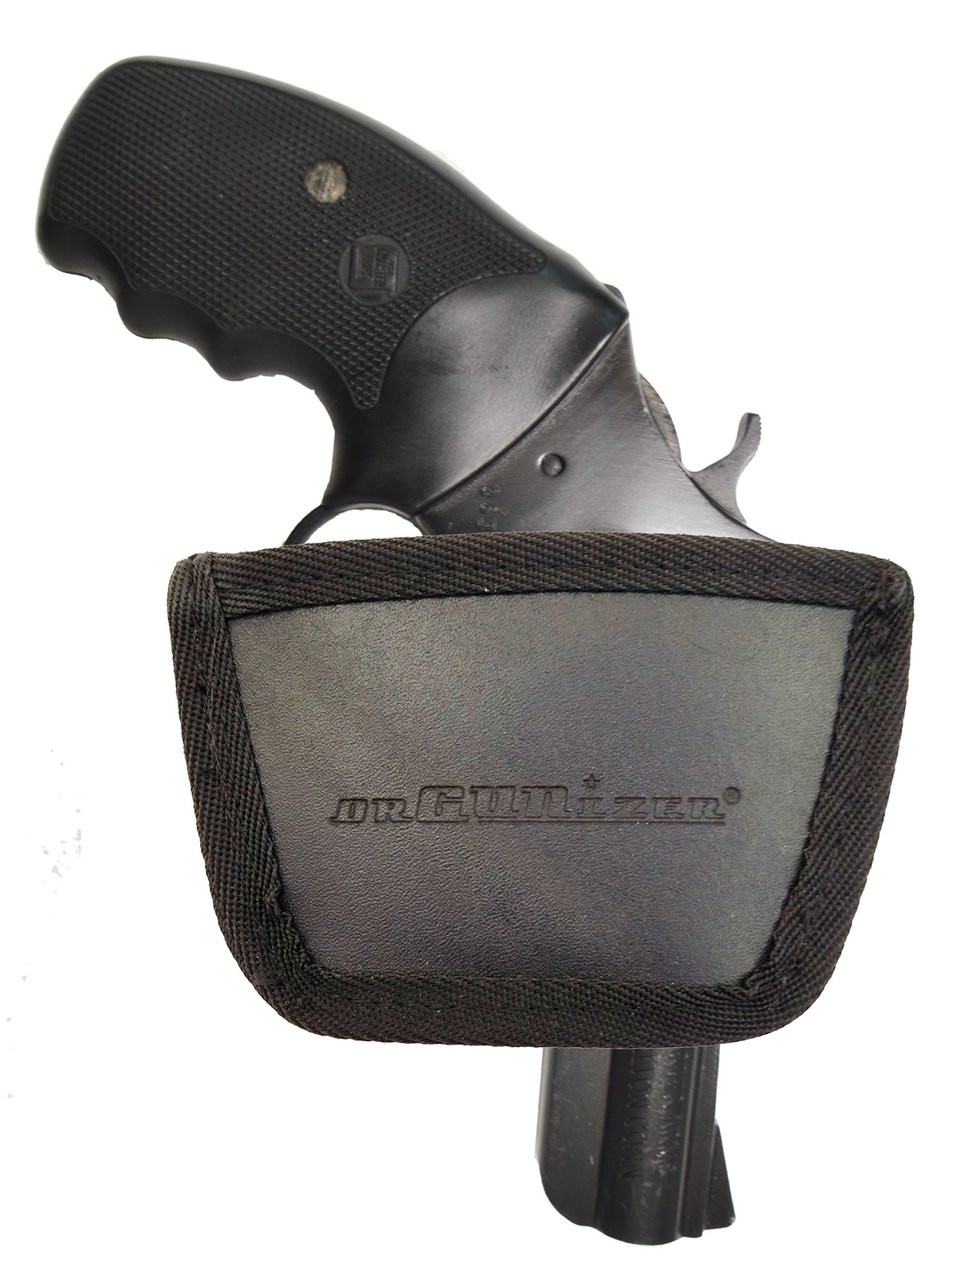 Garrison Grip Leather Inside and Outside Waistband Easy Slide Holster Fits Charter Arms Revolver (SLH) Black